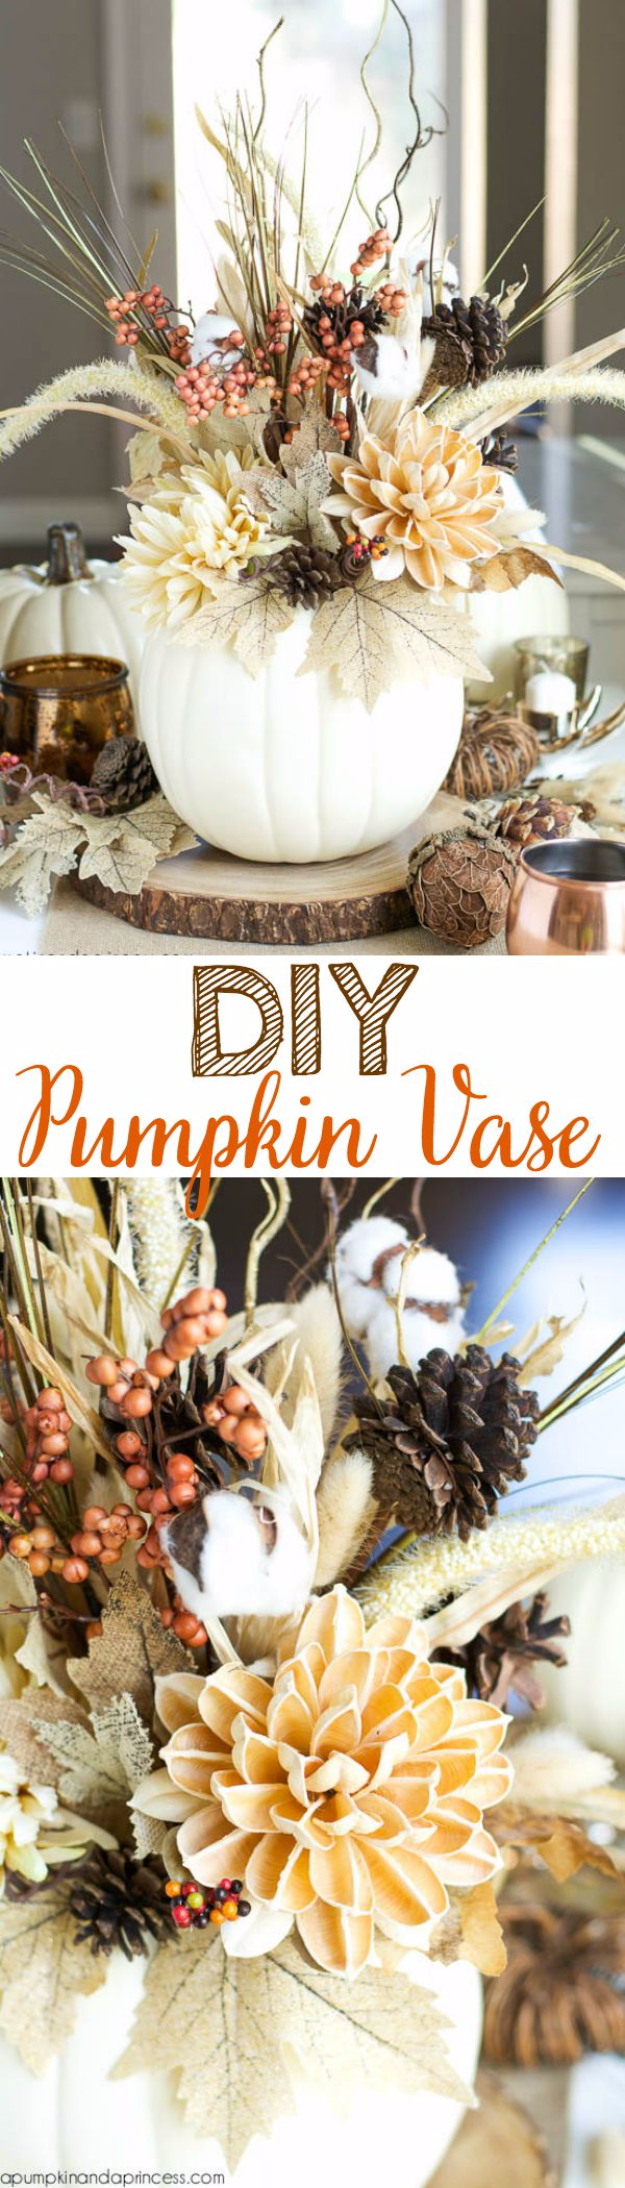 38 Best DIY Projects for Fall - DIY Pumpkin Vase - Quick And Easy Projects For Fall, Fun DIY Projects To Try This Fall, Cute Fall Craft Ideas, Fall Decors, Easy DIY Crafts For Fall http://diyjoy.com/diy-projects-for-fall